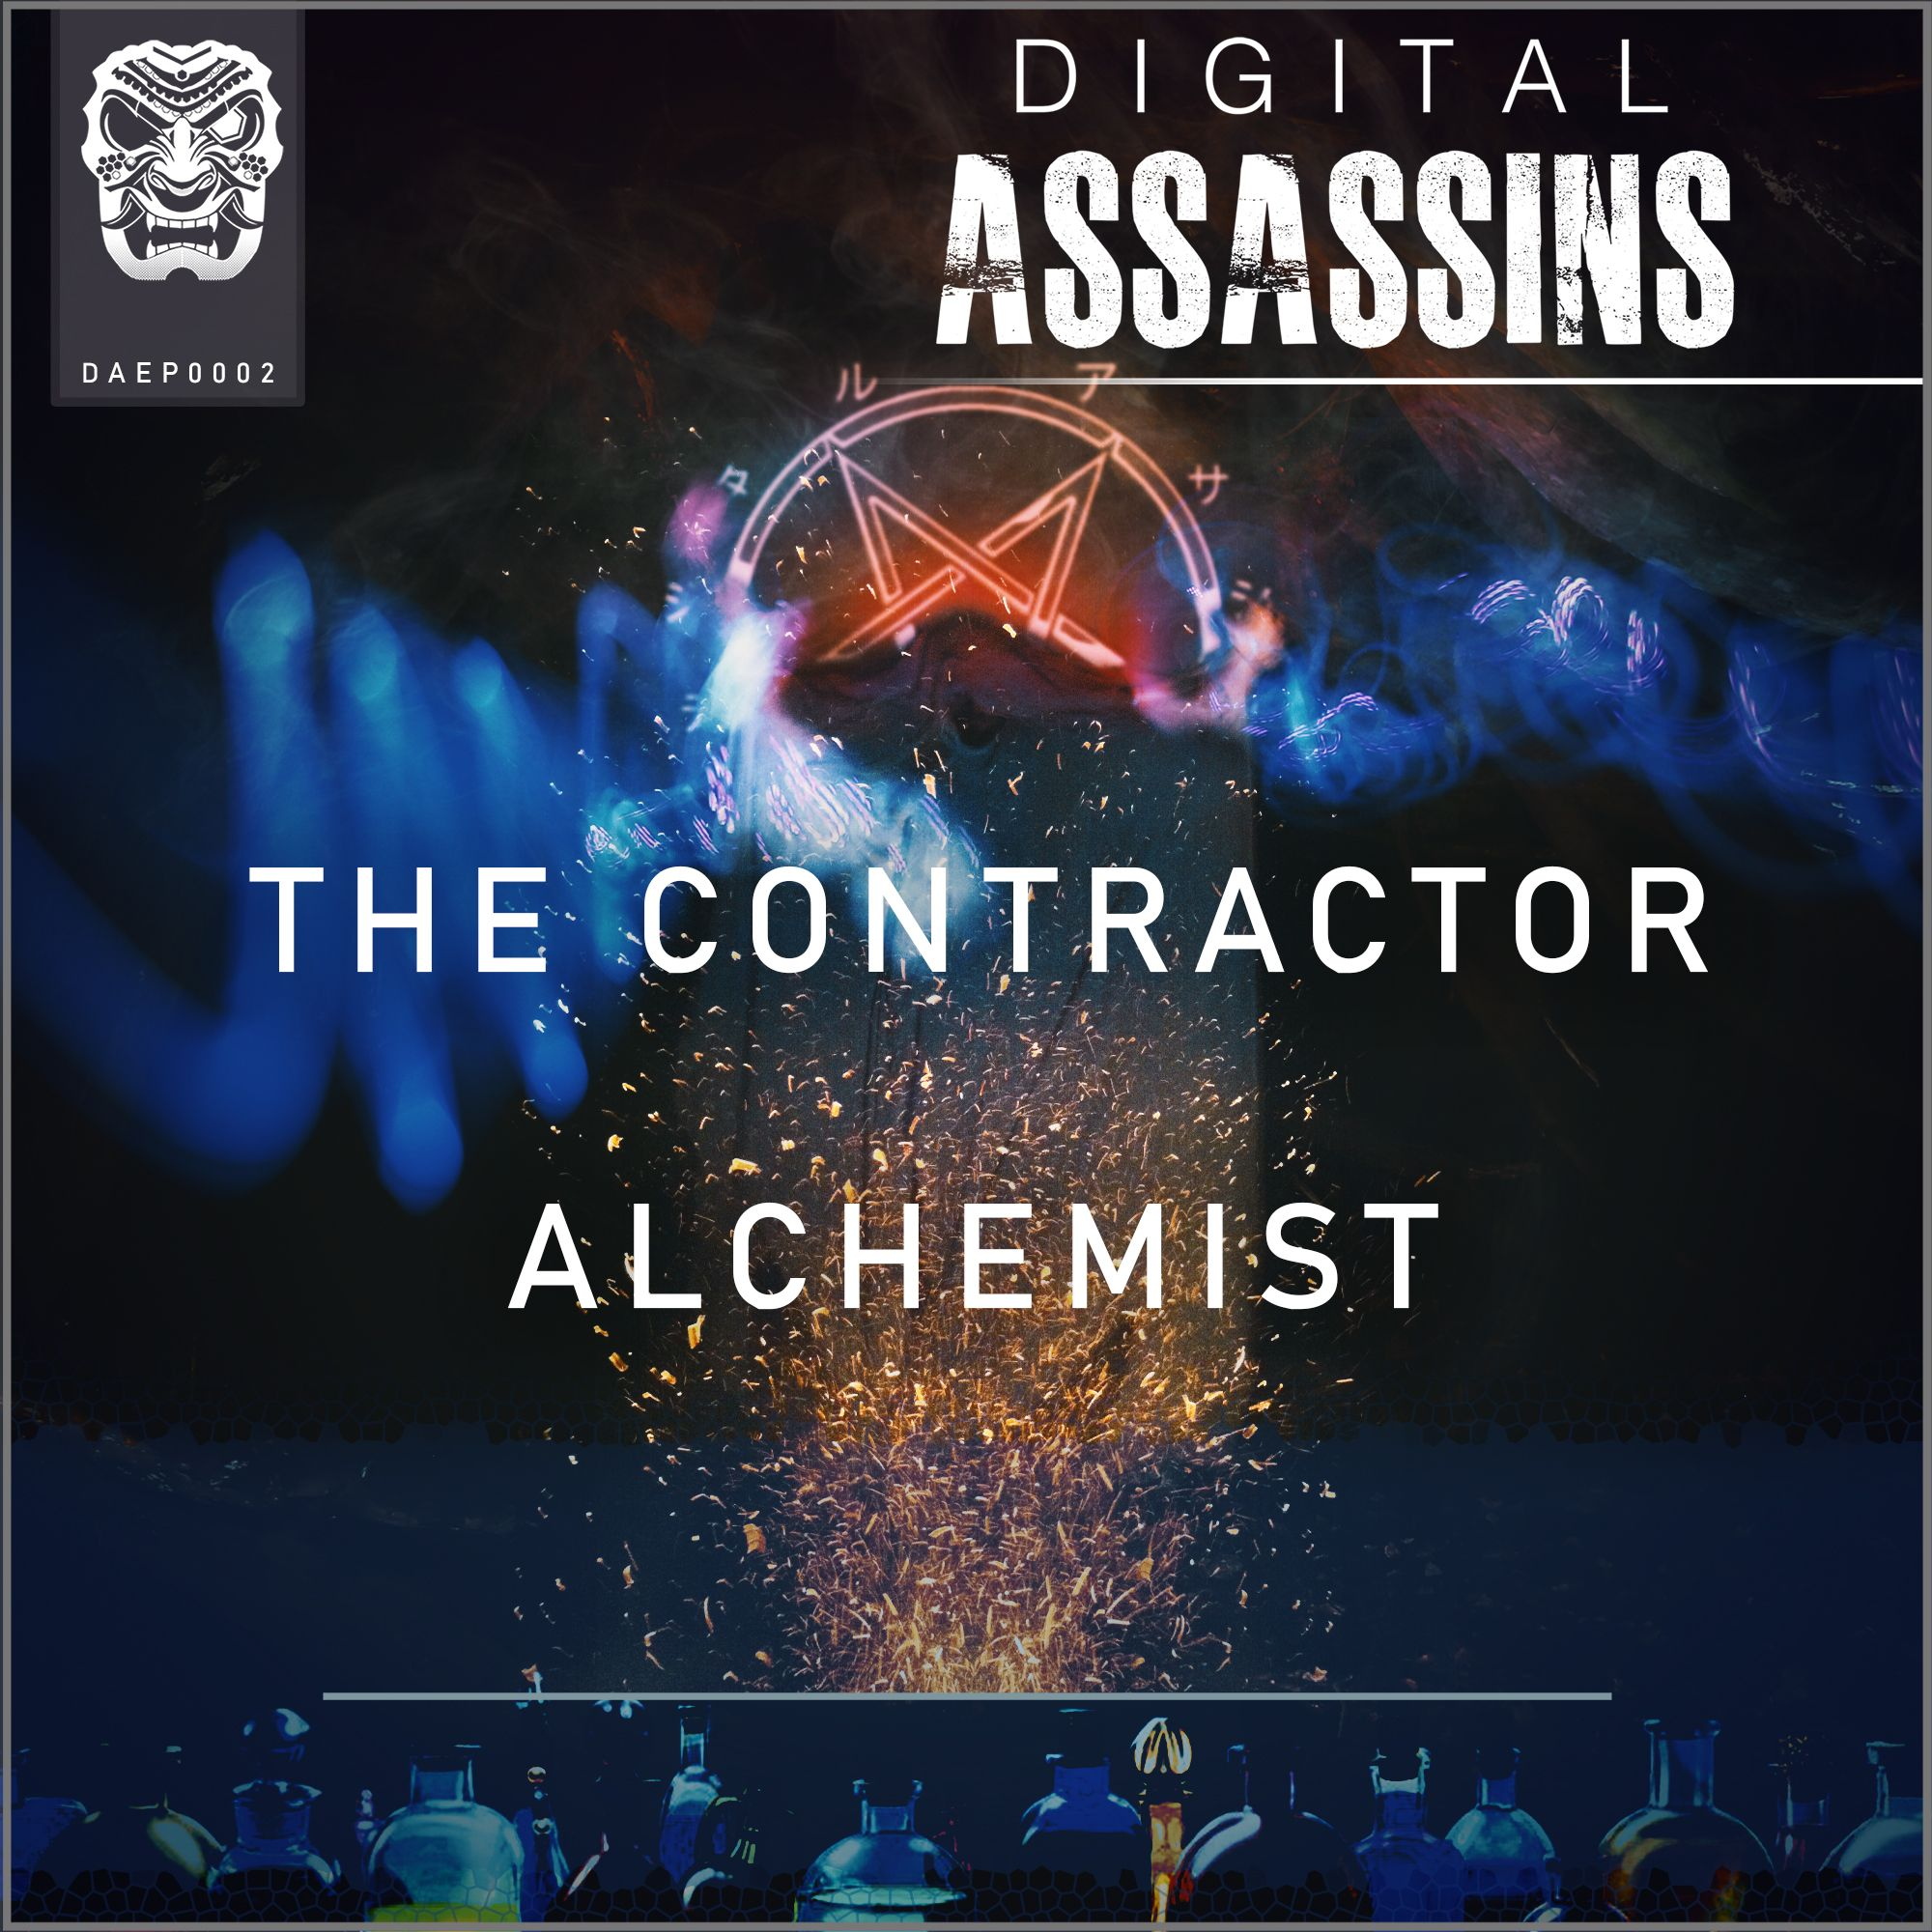 The Contractor - Alchemist